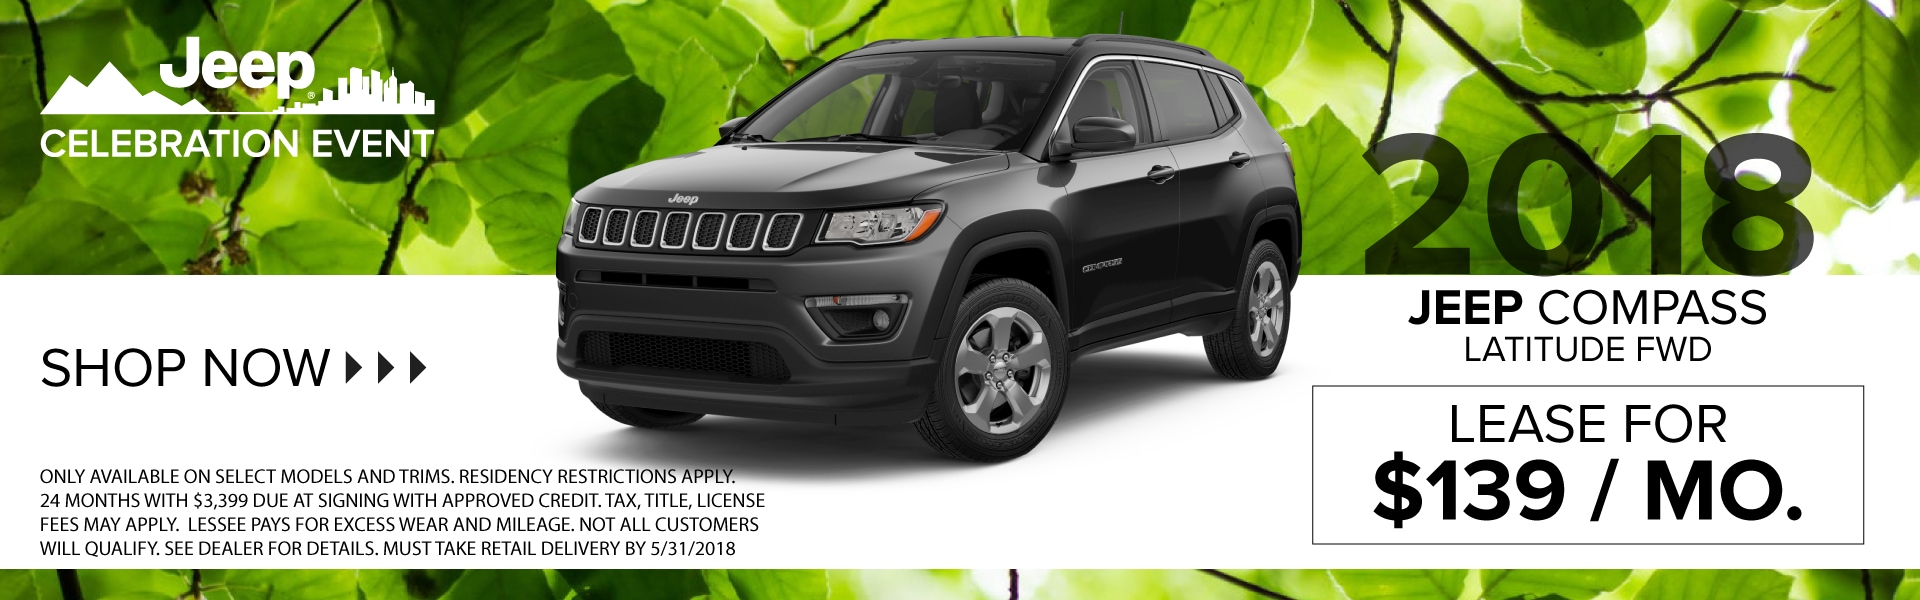 rebates lease used chrysler finance specials dallas incentives and jeep cherokee wrangler deals new grand